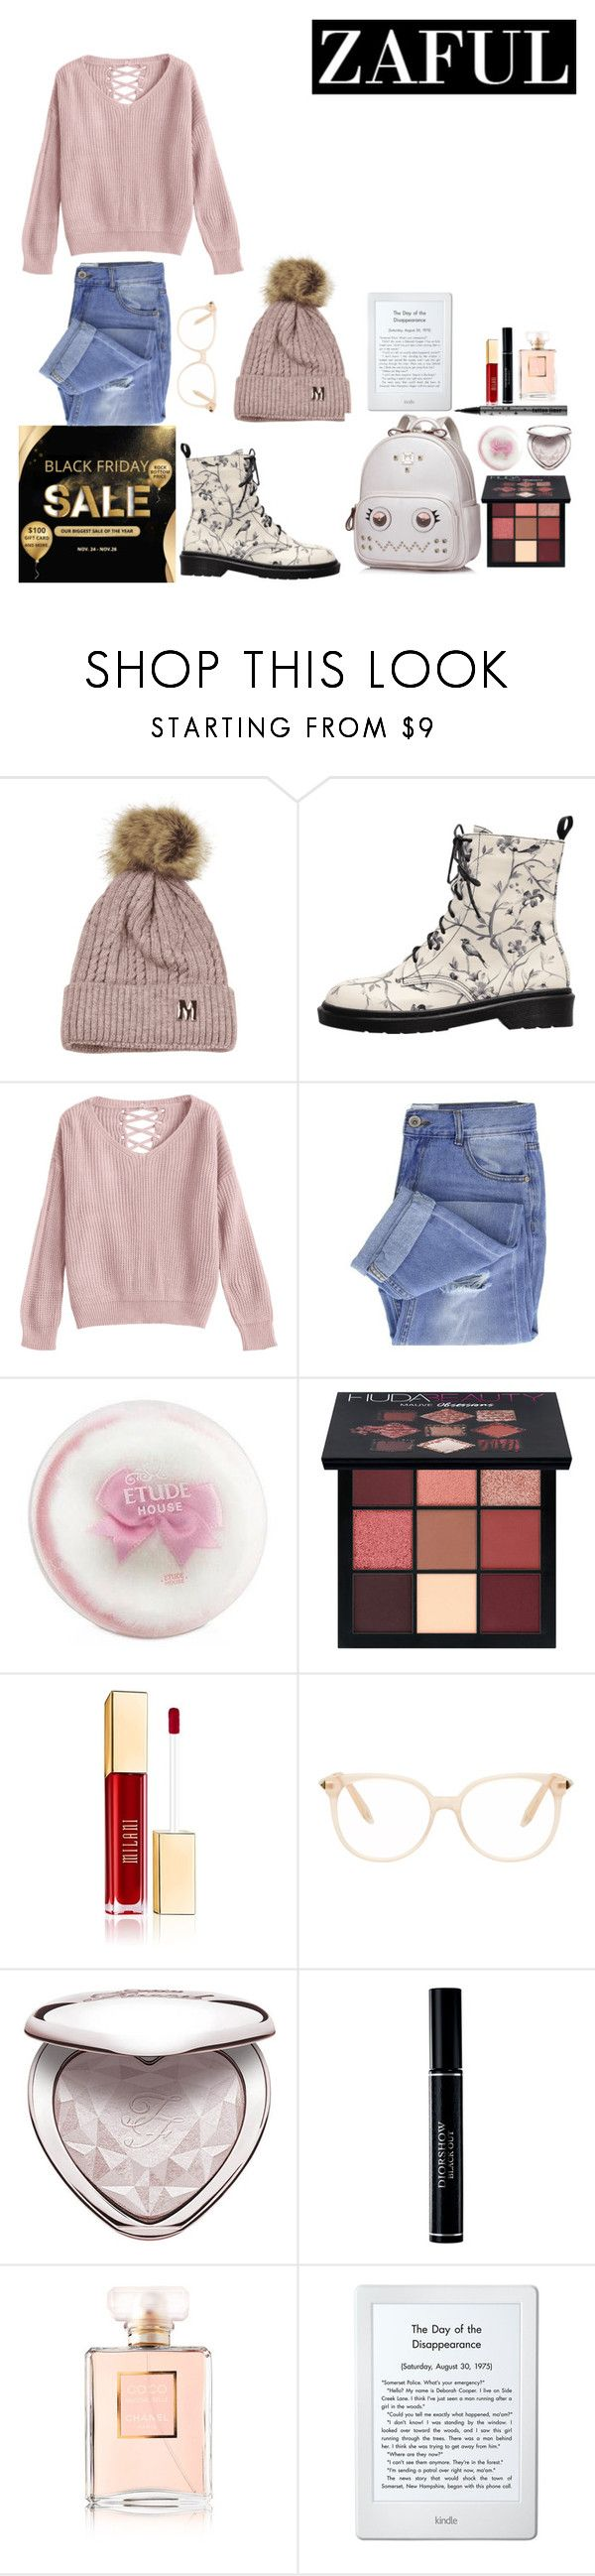 """""""Untitled #393"""" by aliss-15 ❤ liked on Polyvore featuring Taya, Etude House, Huda Beauty, Victoria Beckham, Kat Von D, Too Faced Cosmetics, Christian Dior, Chanel, Amazon and contest"""